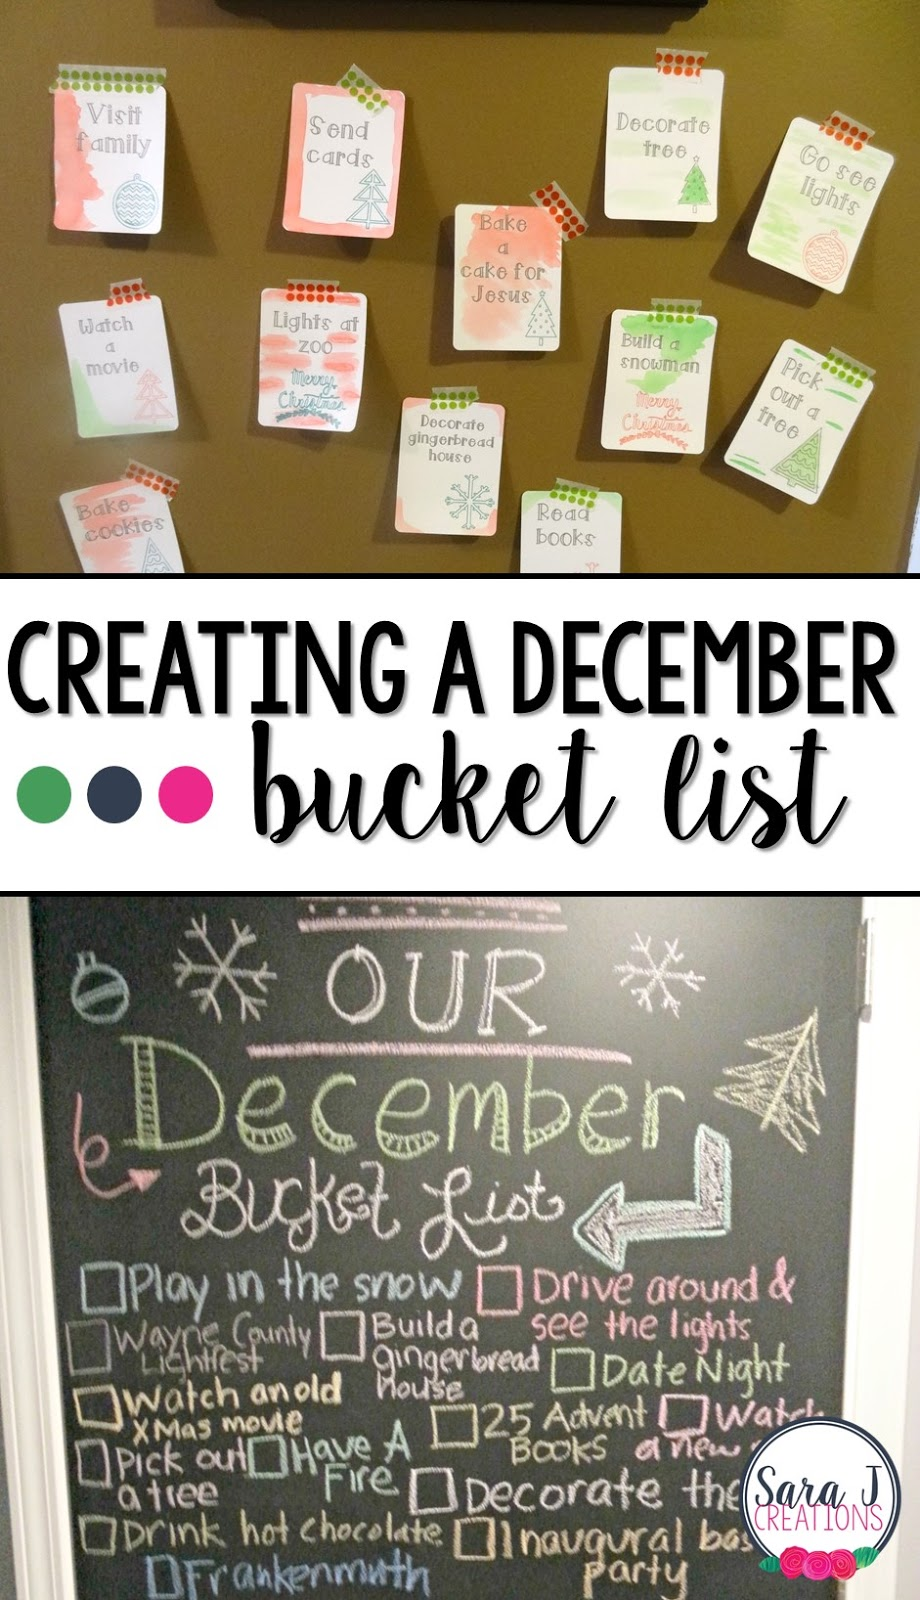 Counting down to Christmas by creating a December bucket list with crafts, ideas, DIY, and traditions to make the month fun as a family.